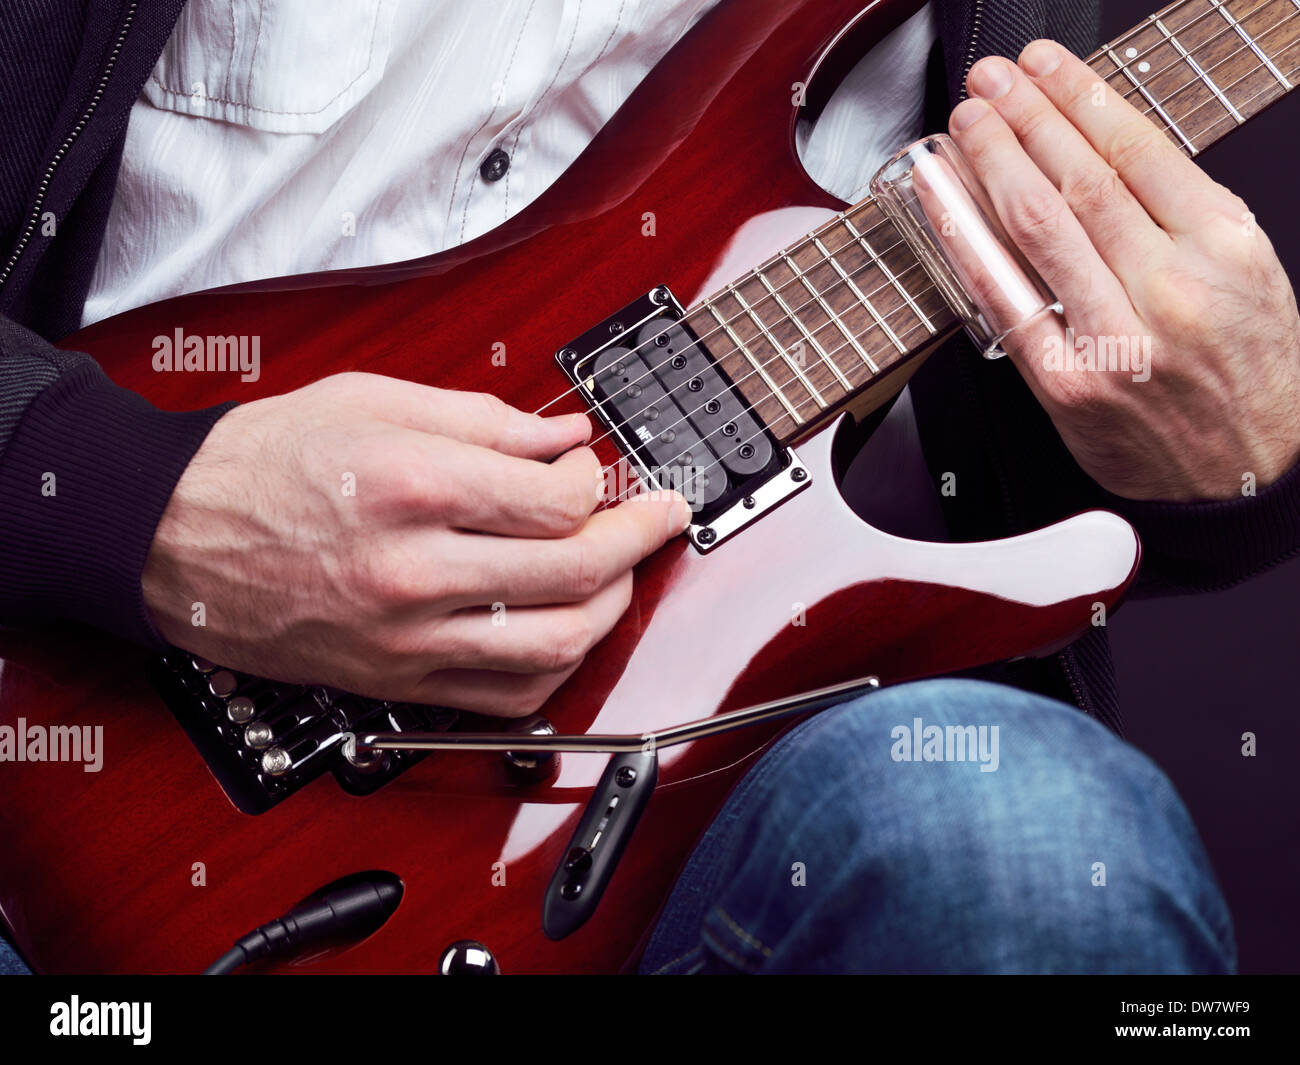 Closeup of man hands playing red electric guitar with a slide - Stock Image